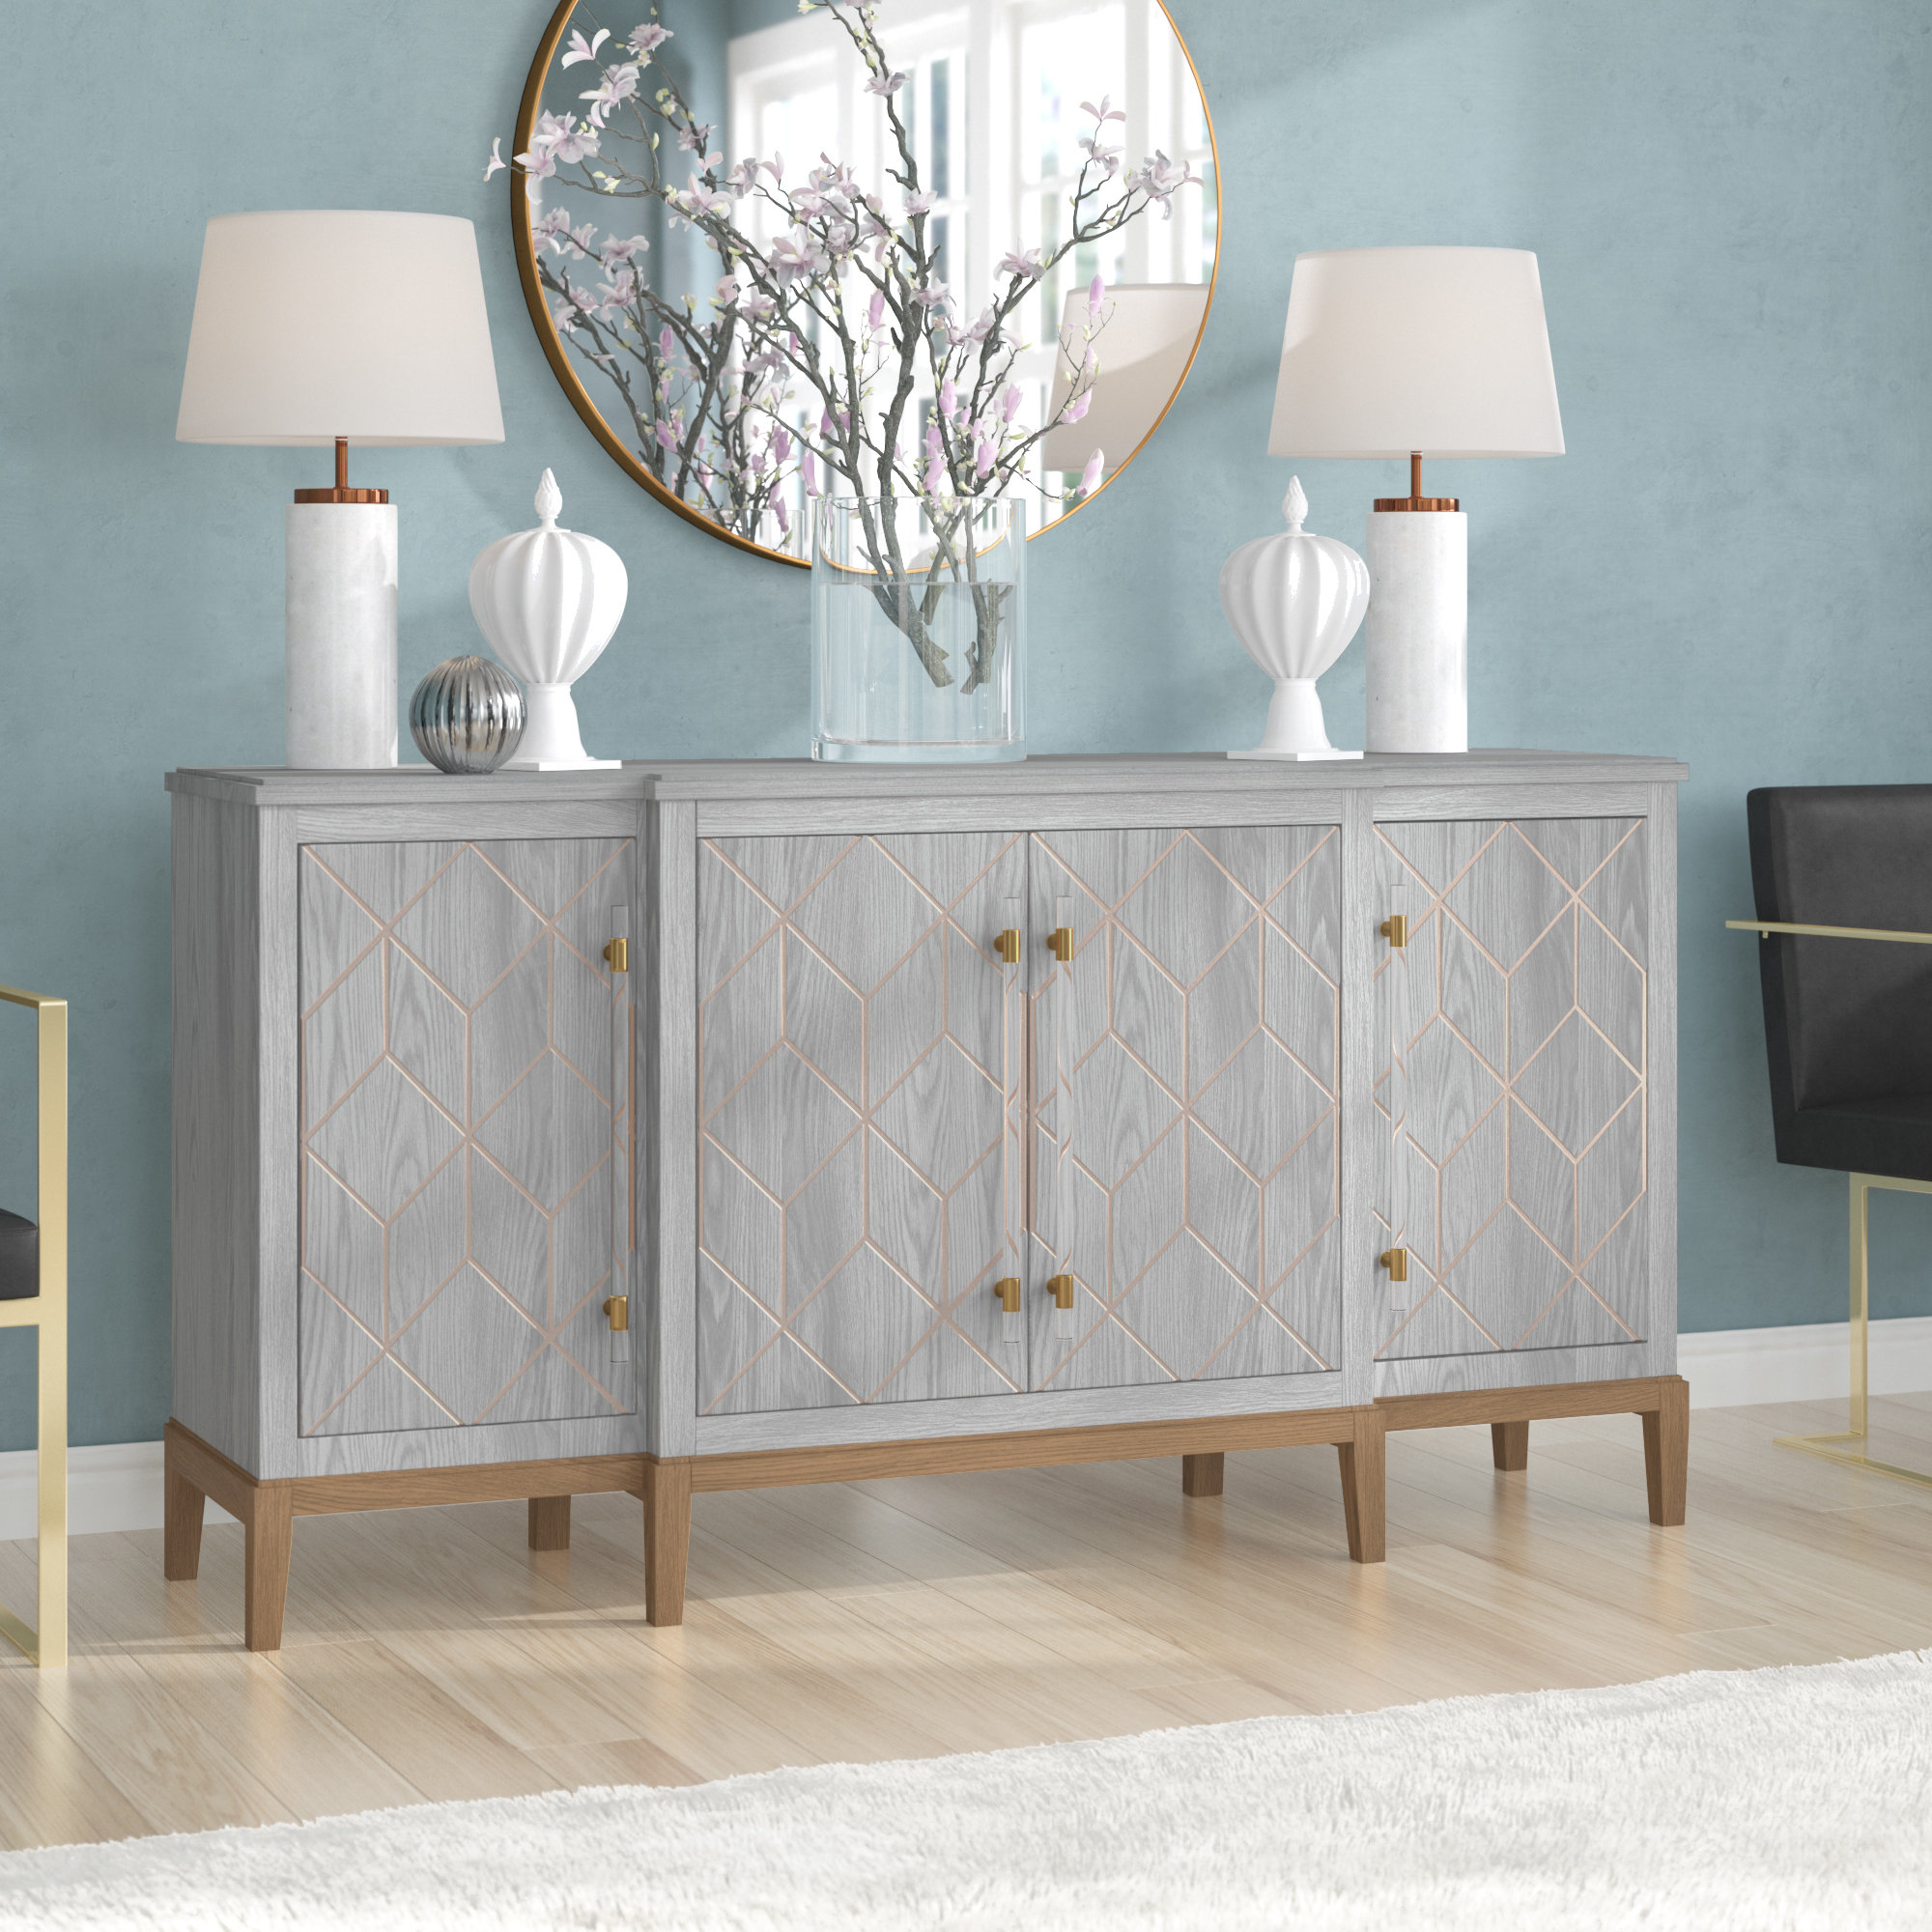 Drawer Equipped Sideboards & Buffets You'll Love In 2019 Throughout Joyner Sideboards (View 4 of 20)